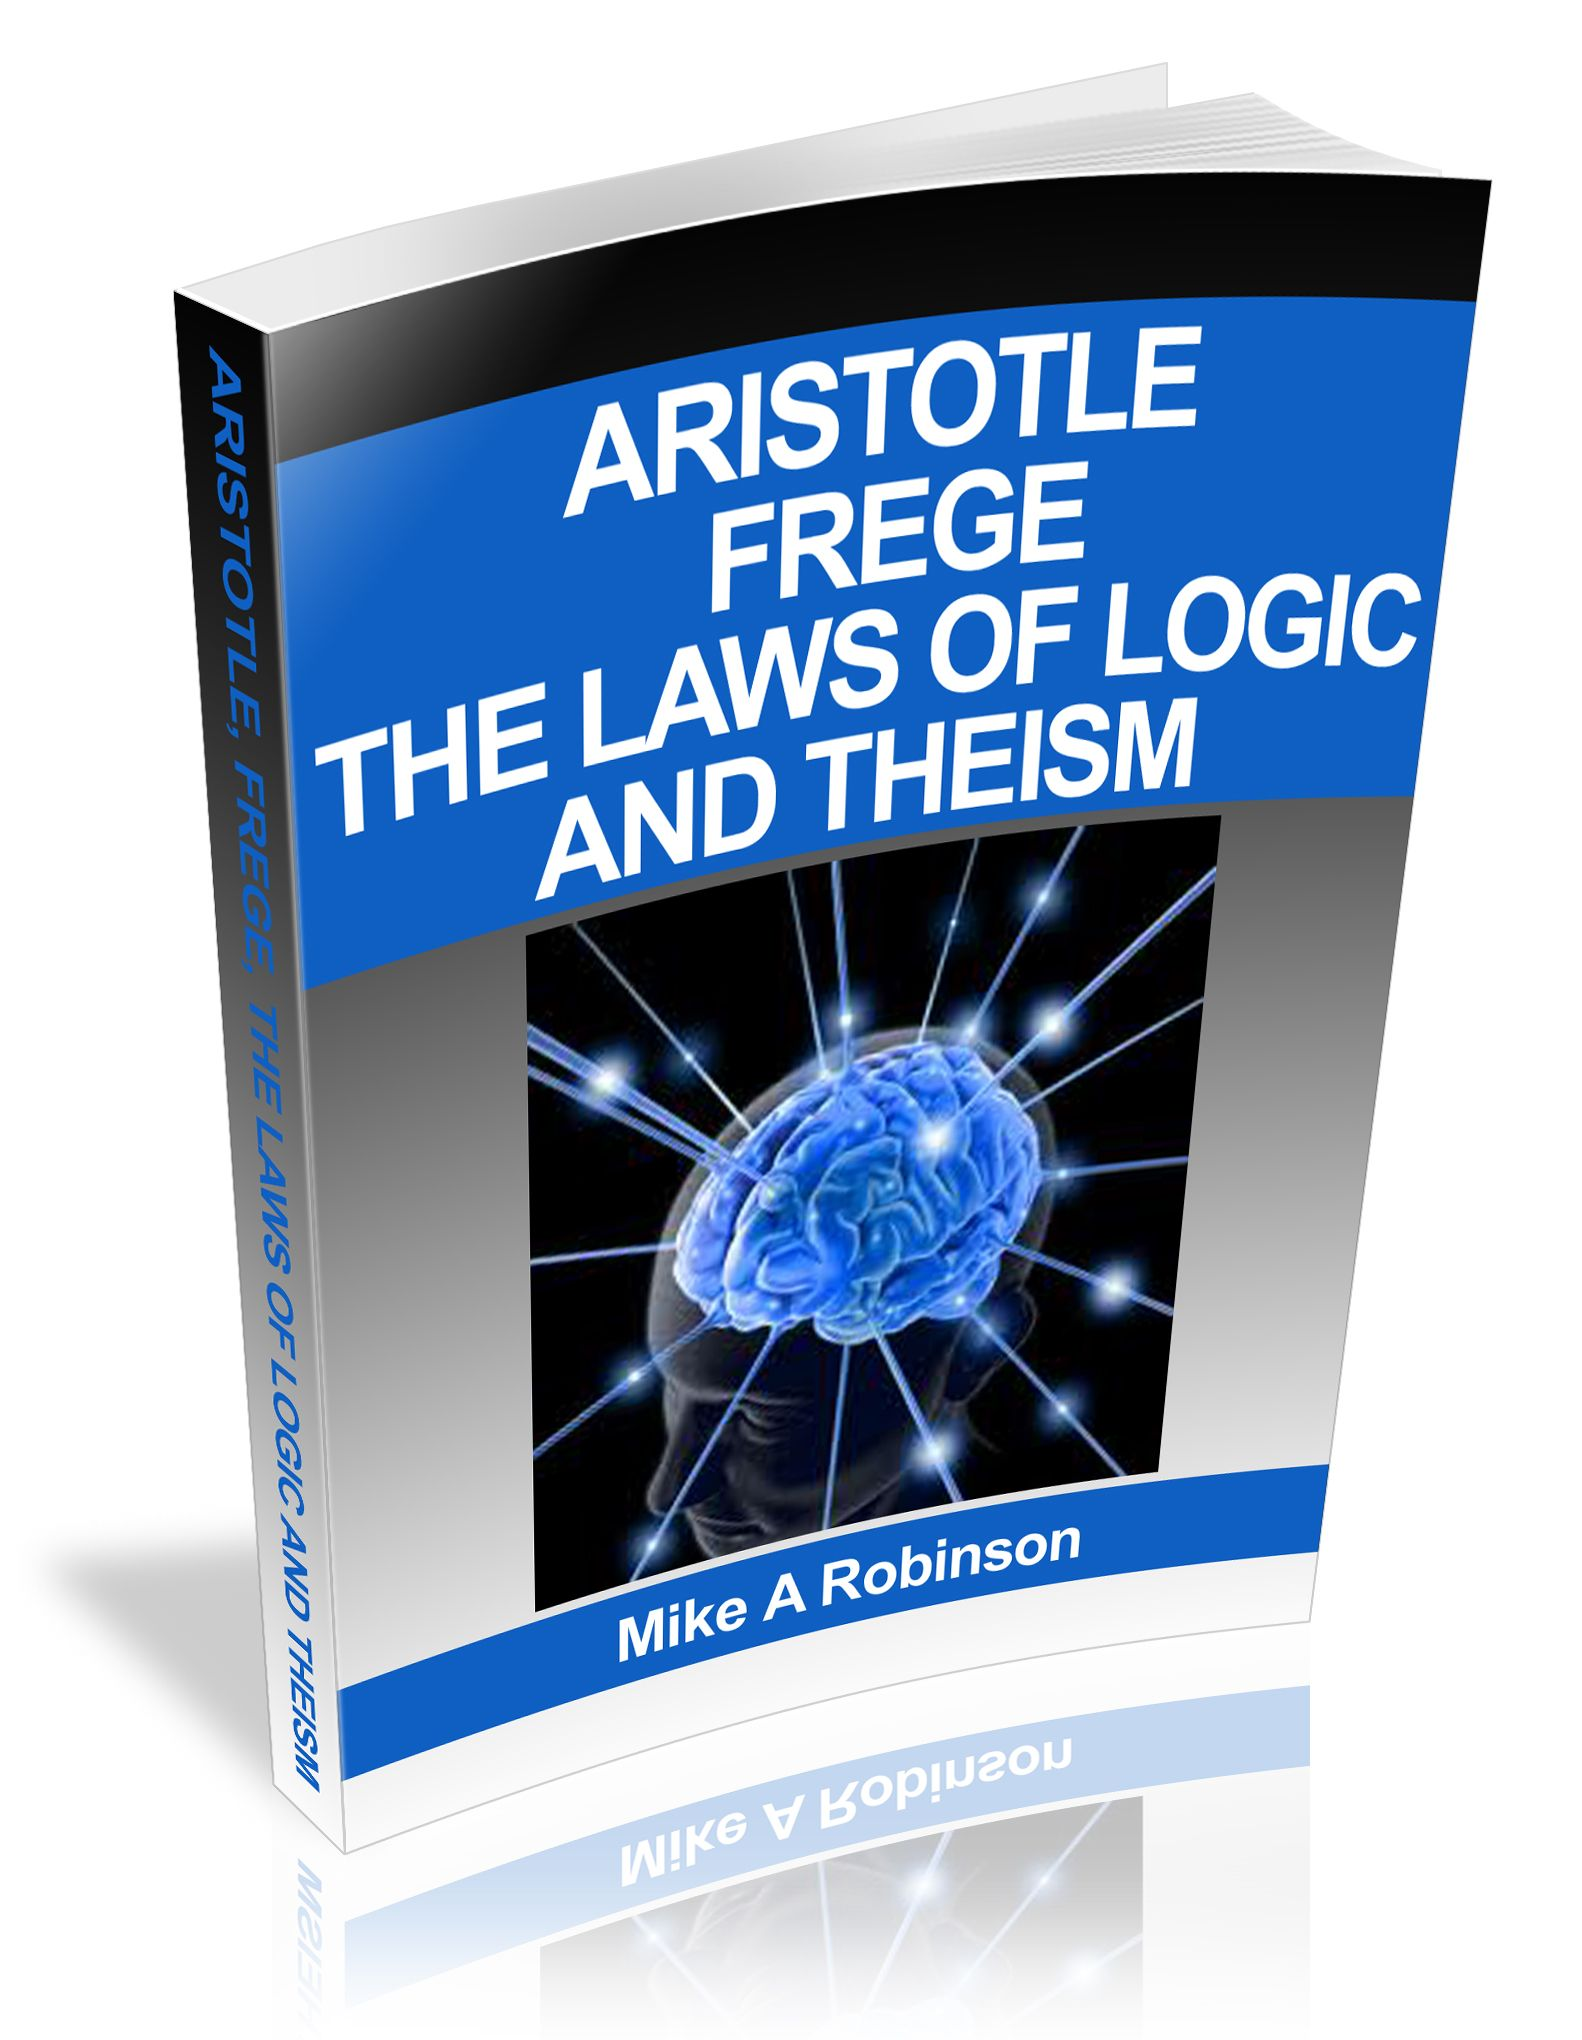 Ck out my blog essay frege the laws of logic truth and theism ck out my blog essay frege the laws of logic truth and fandeluxe Image collections